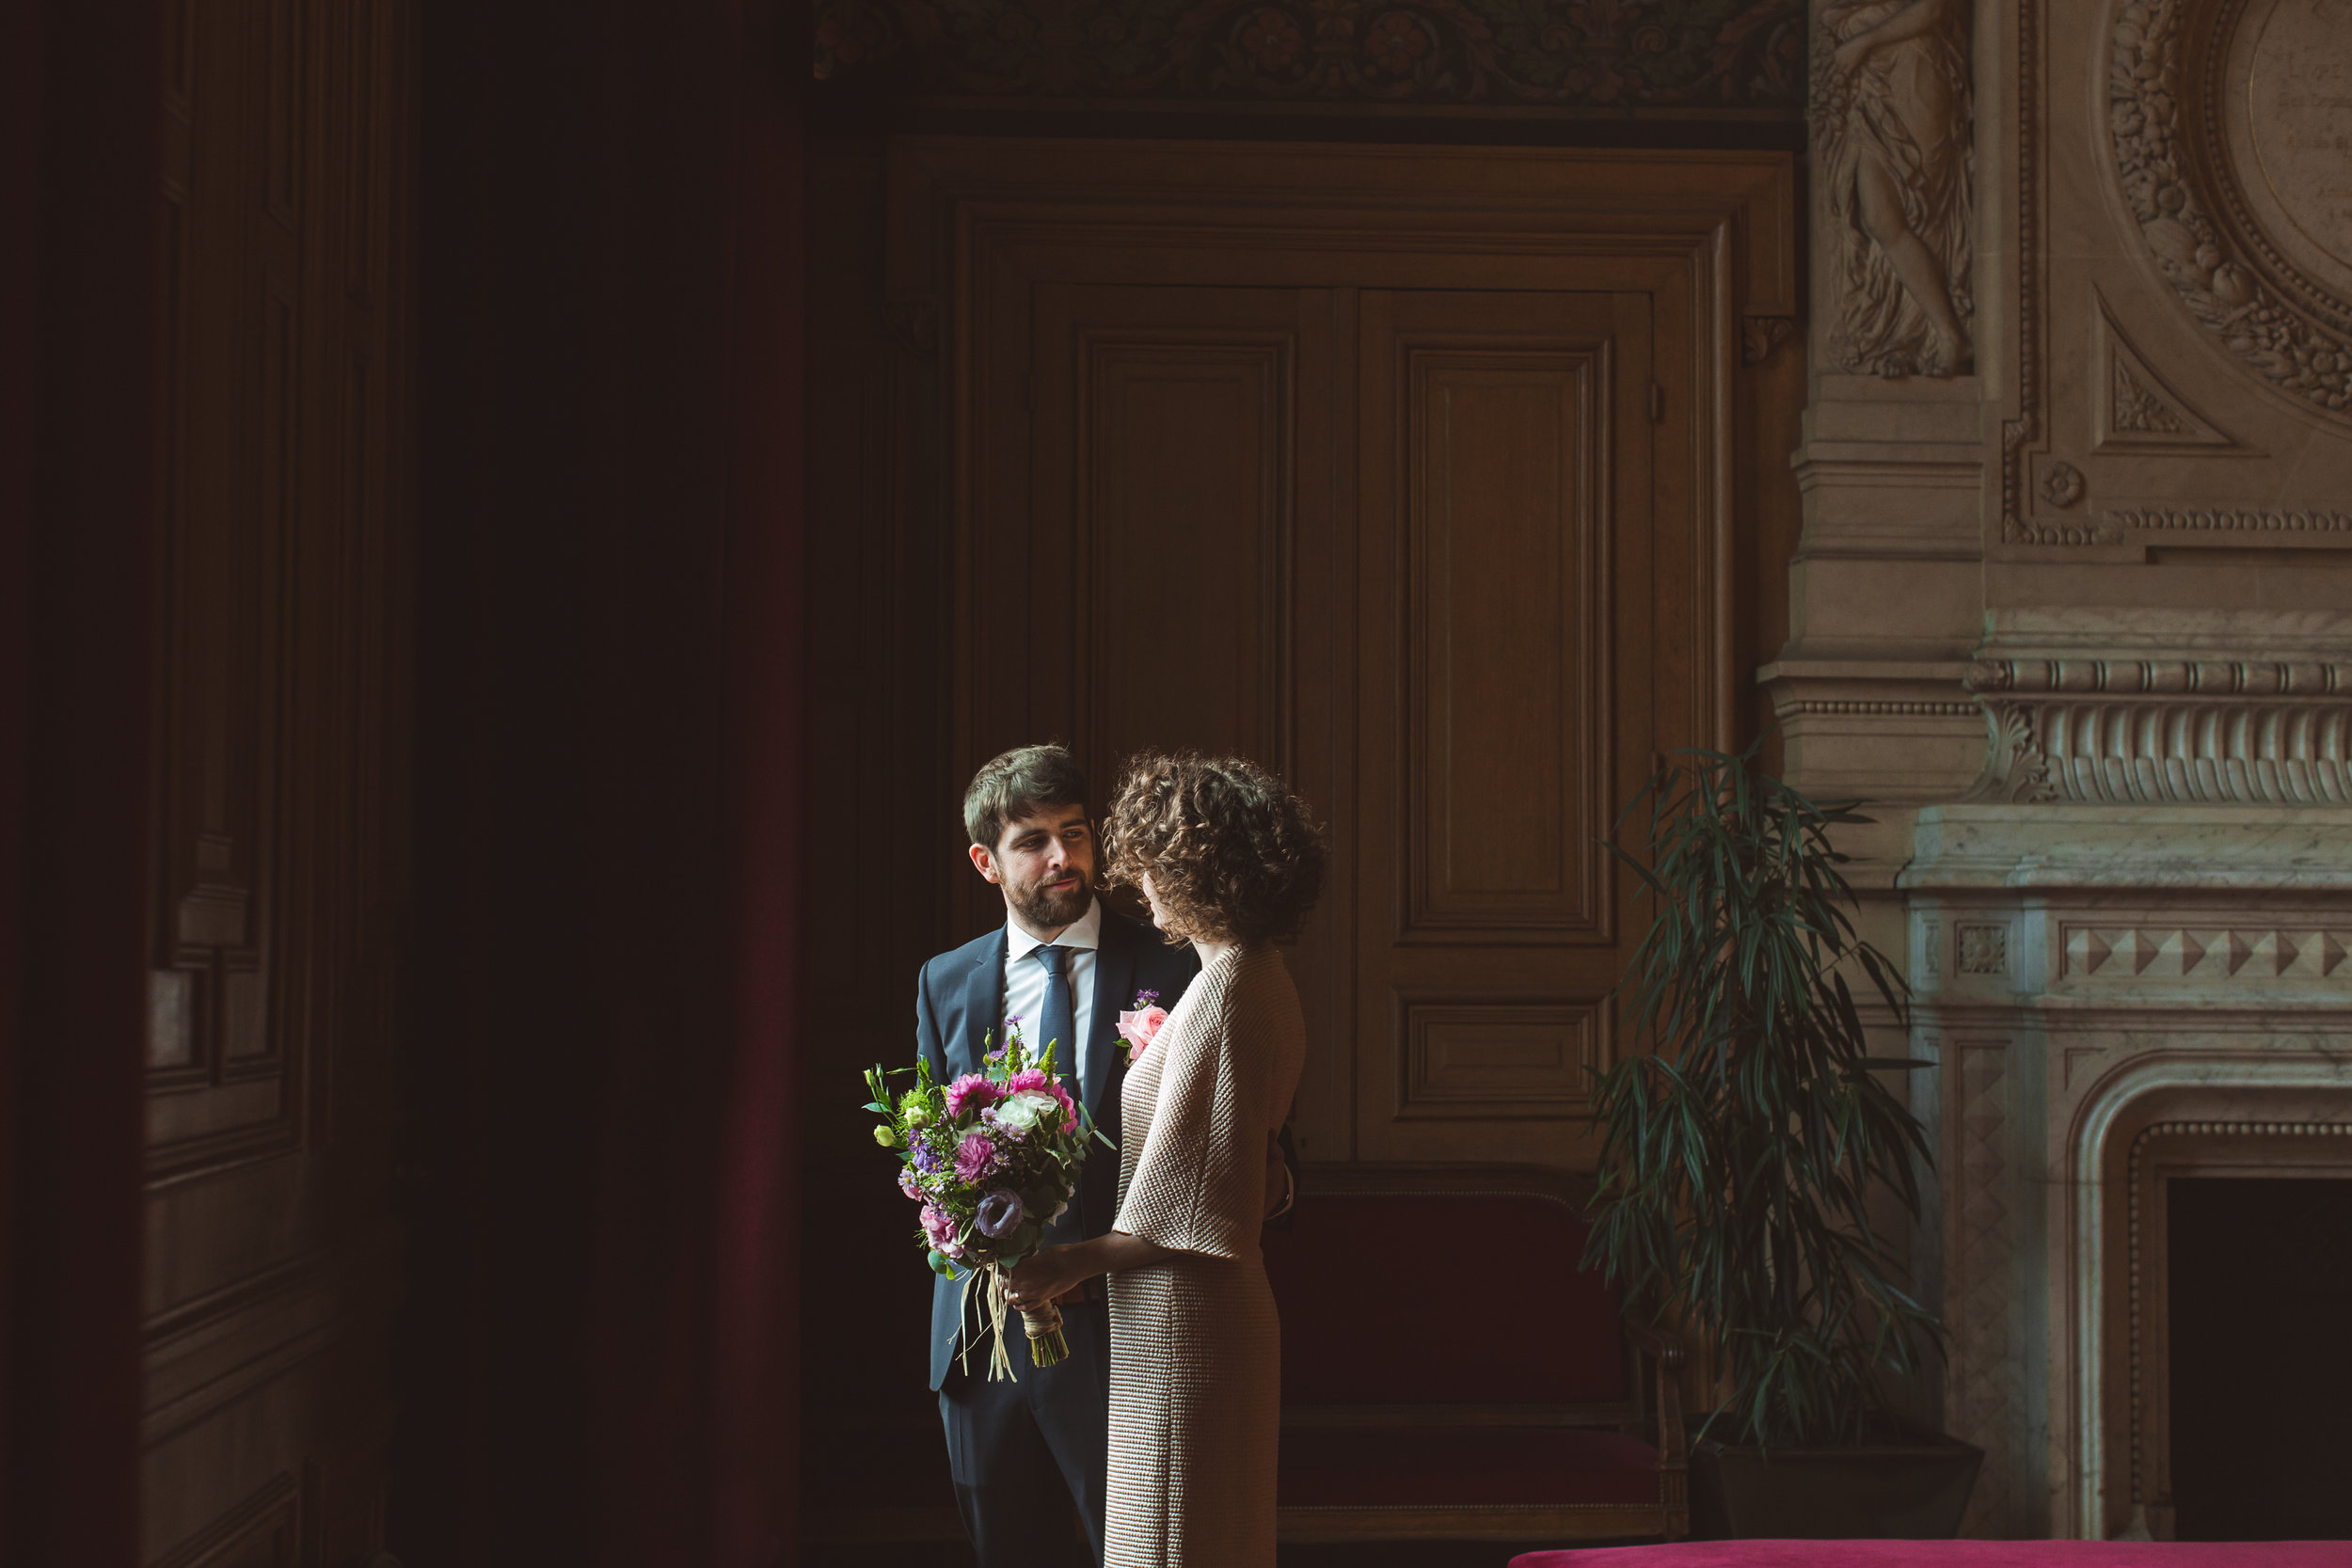 Emma&Nico_WeddingParis_by_UlaBlocksage-92.jpg